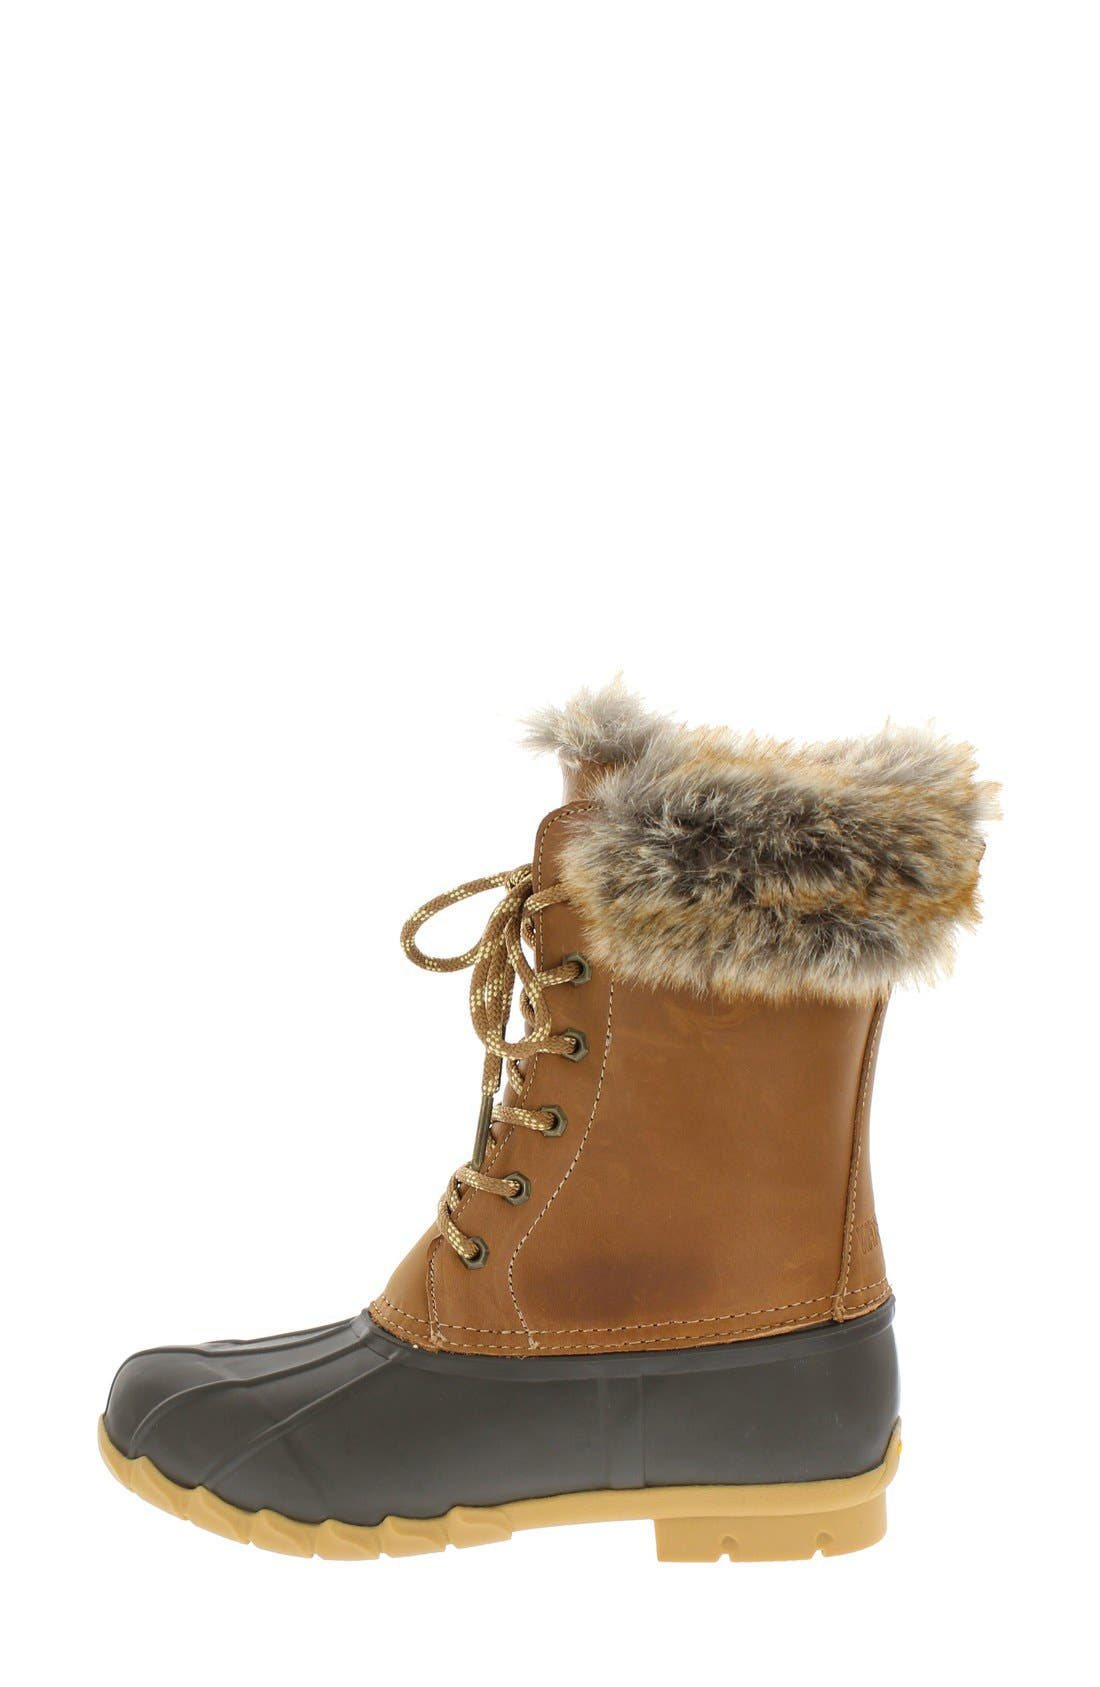 Agnus Faux Fur Lined Duck Boot,                             Alternate thumbnail 2, color,                             Tan